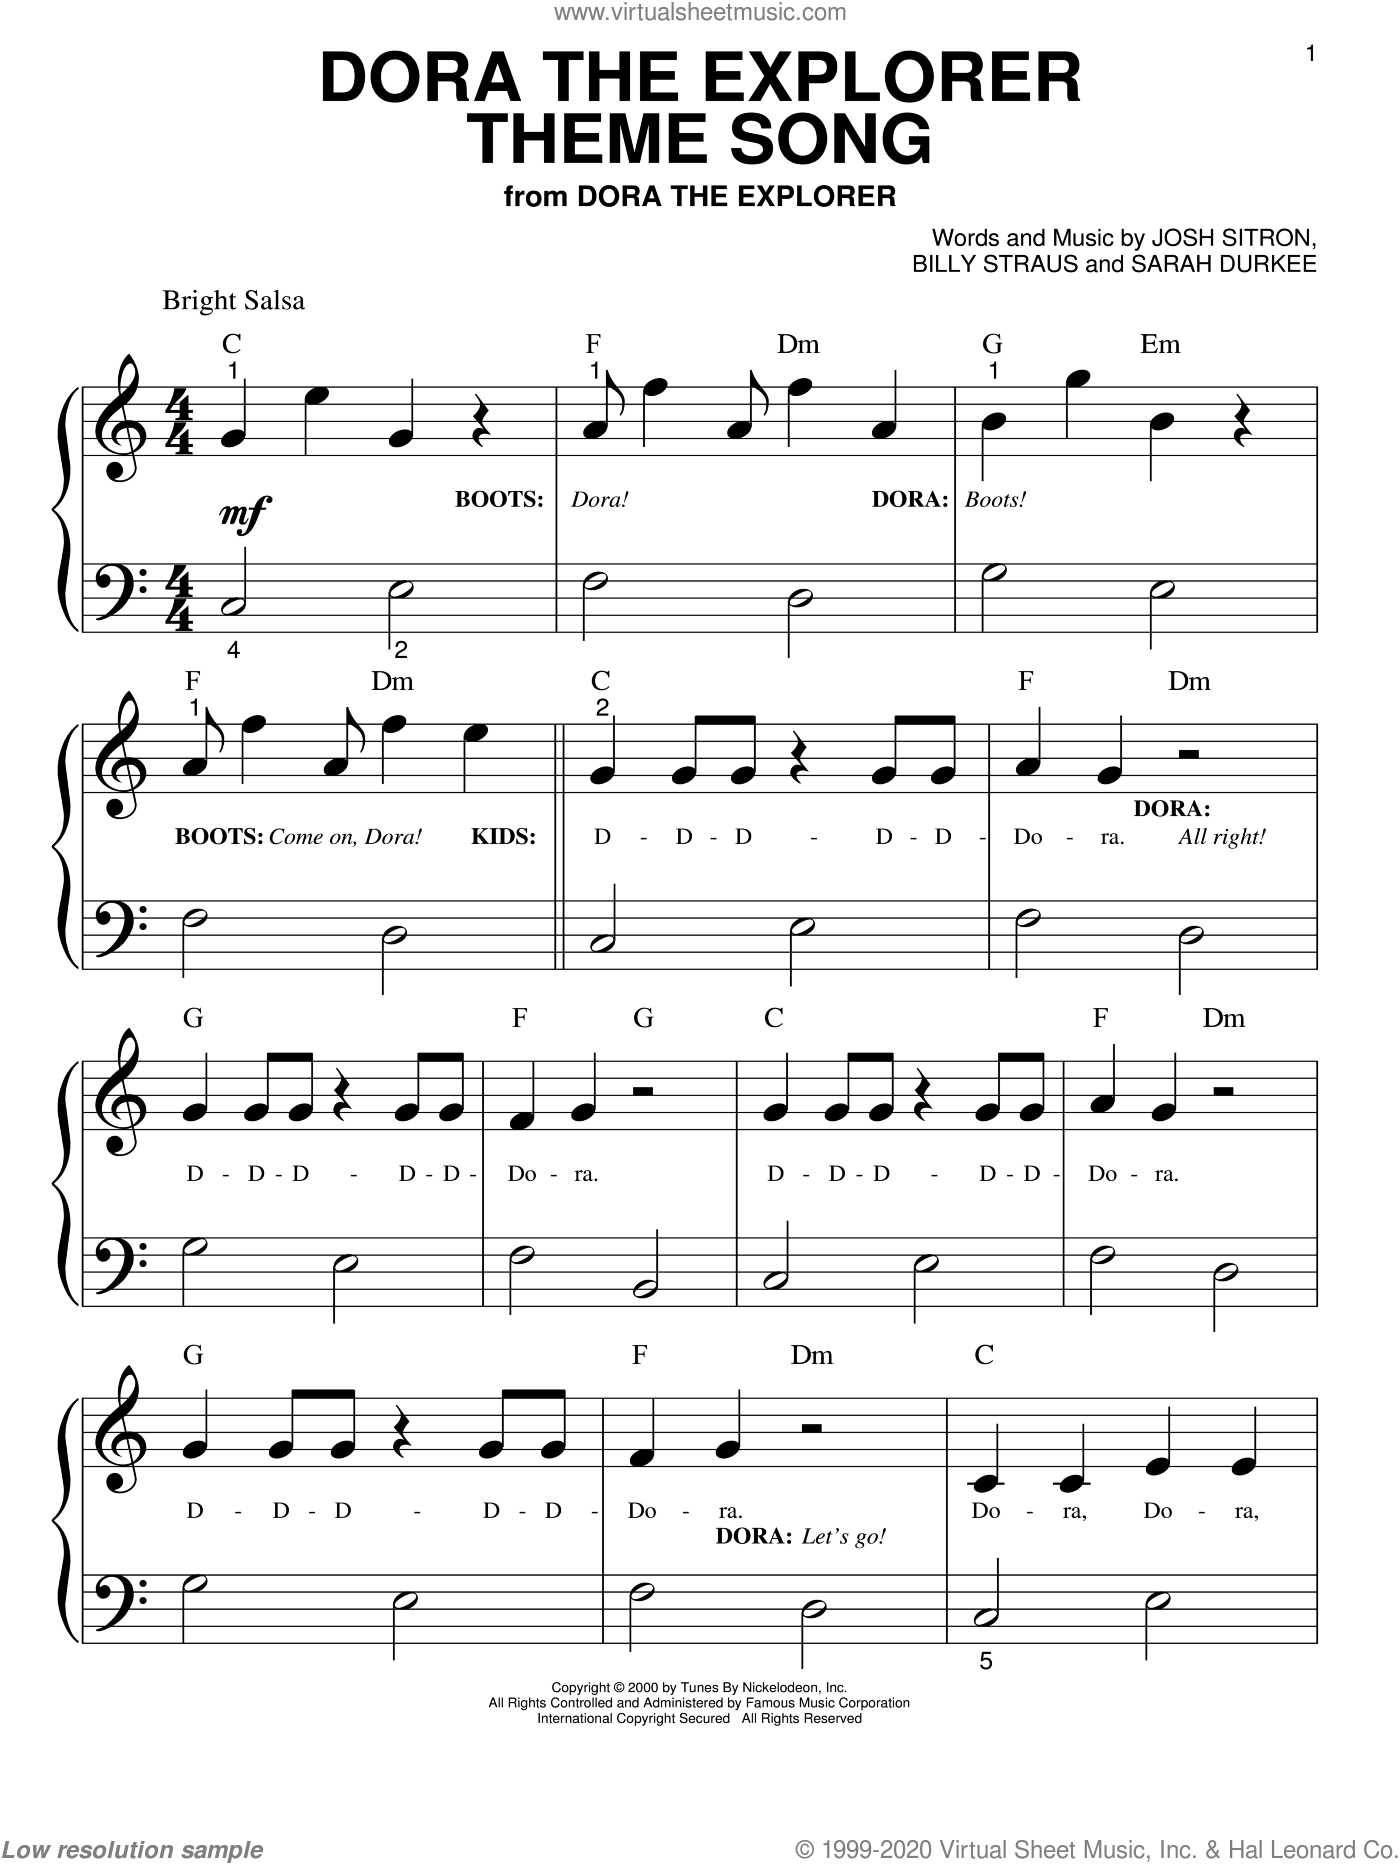 Dora The Explorer Theme Song sheet music for piano solo (big note book) by Sarah Durkee and Billy Straus. Score Image Preview.